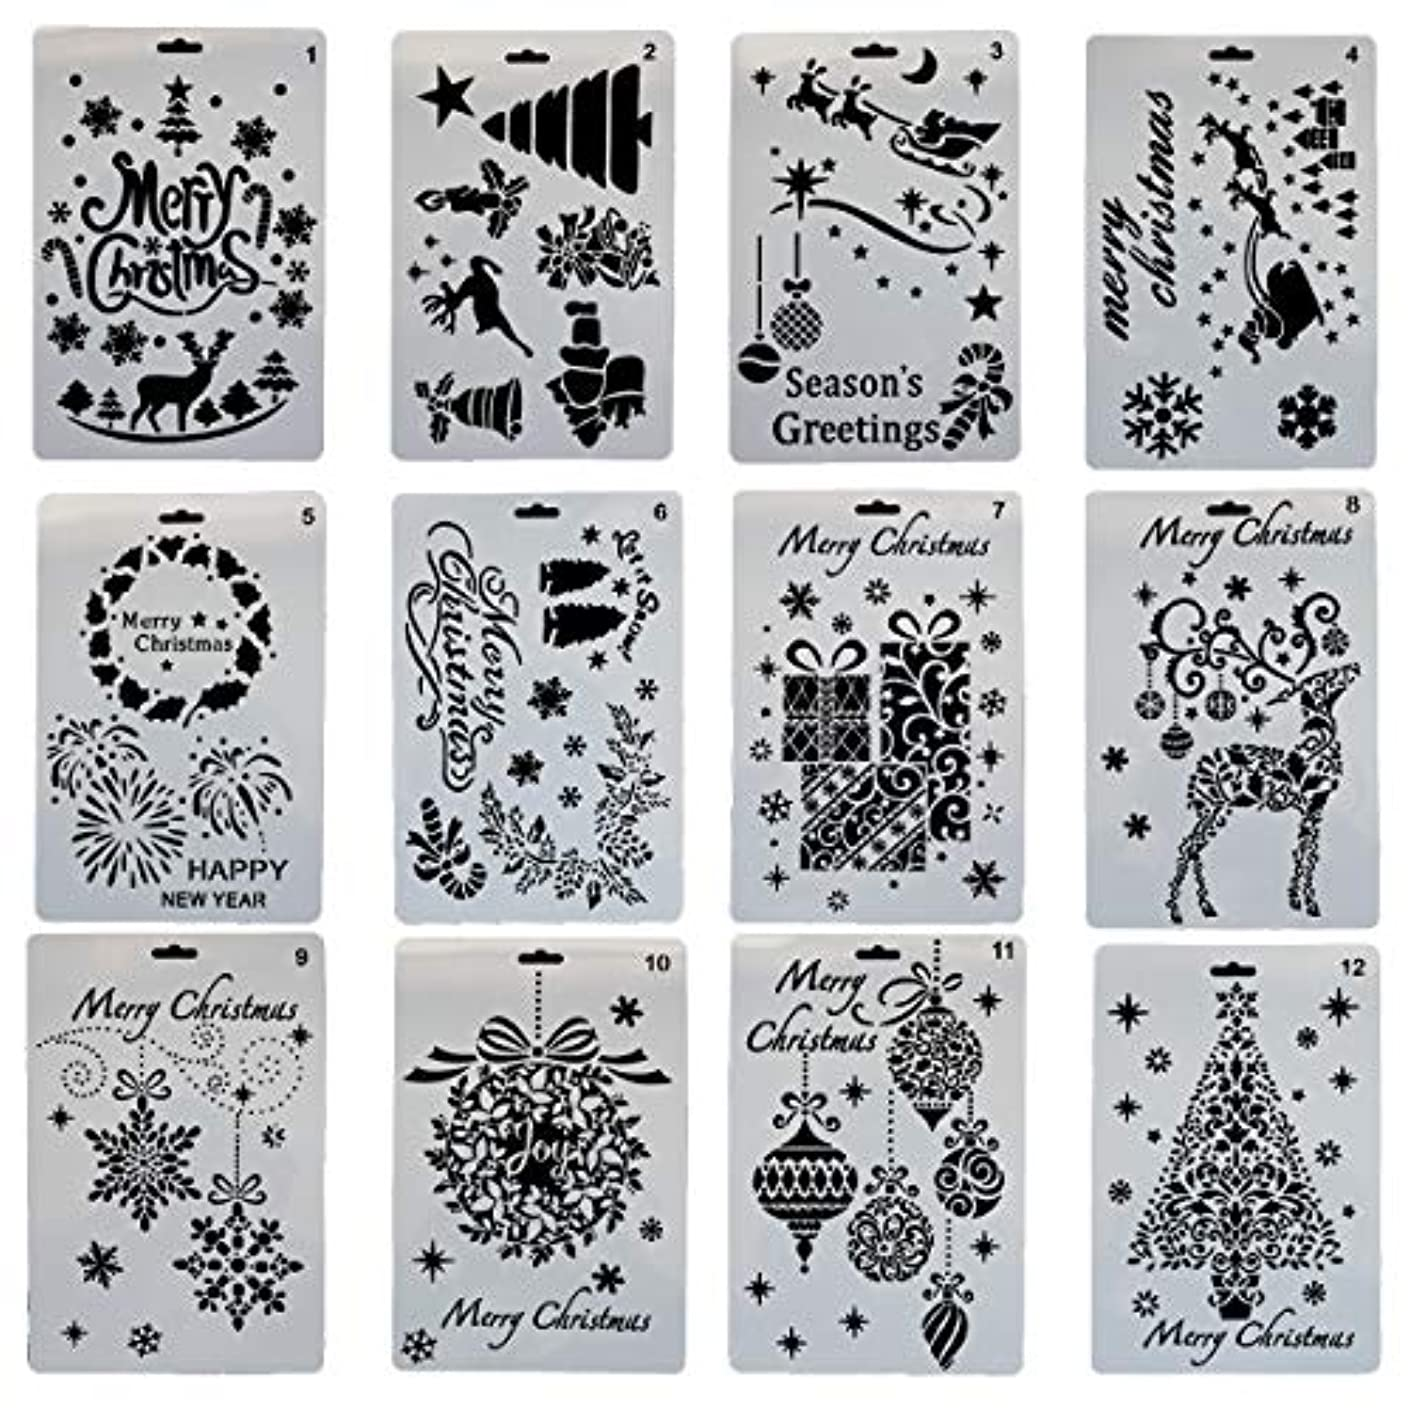 Christmas Painting Stencils, Misscrafts 12pcs Stencils Bullet Journal Plastic Stencil Set for Journaling Scrapbooking DIY Cards Making 7x10 inches